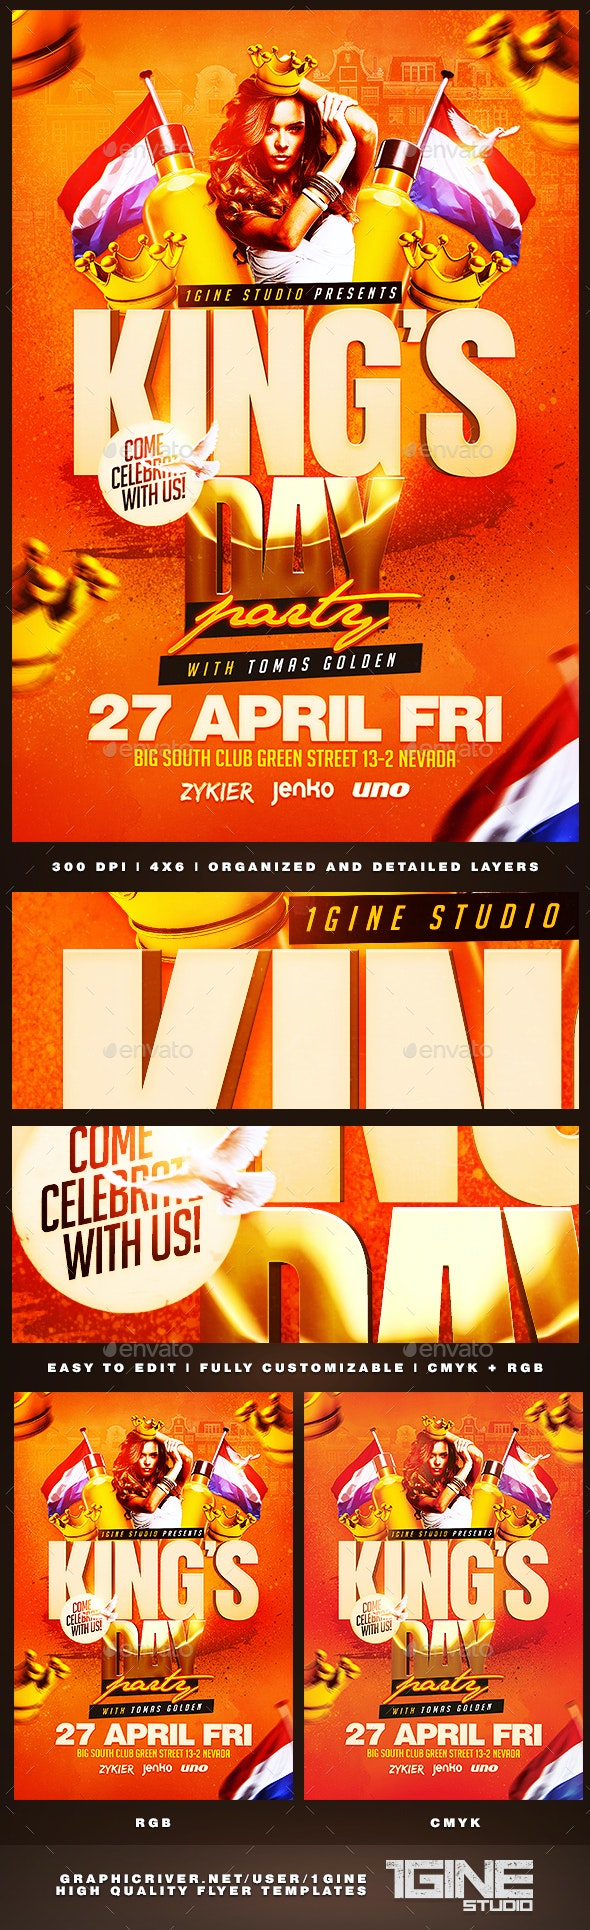 King's Day / KoningsDag Party Flyer Template - Holidays Events